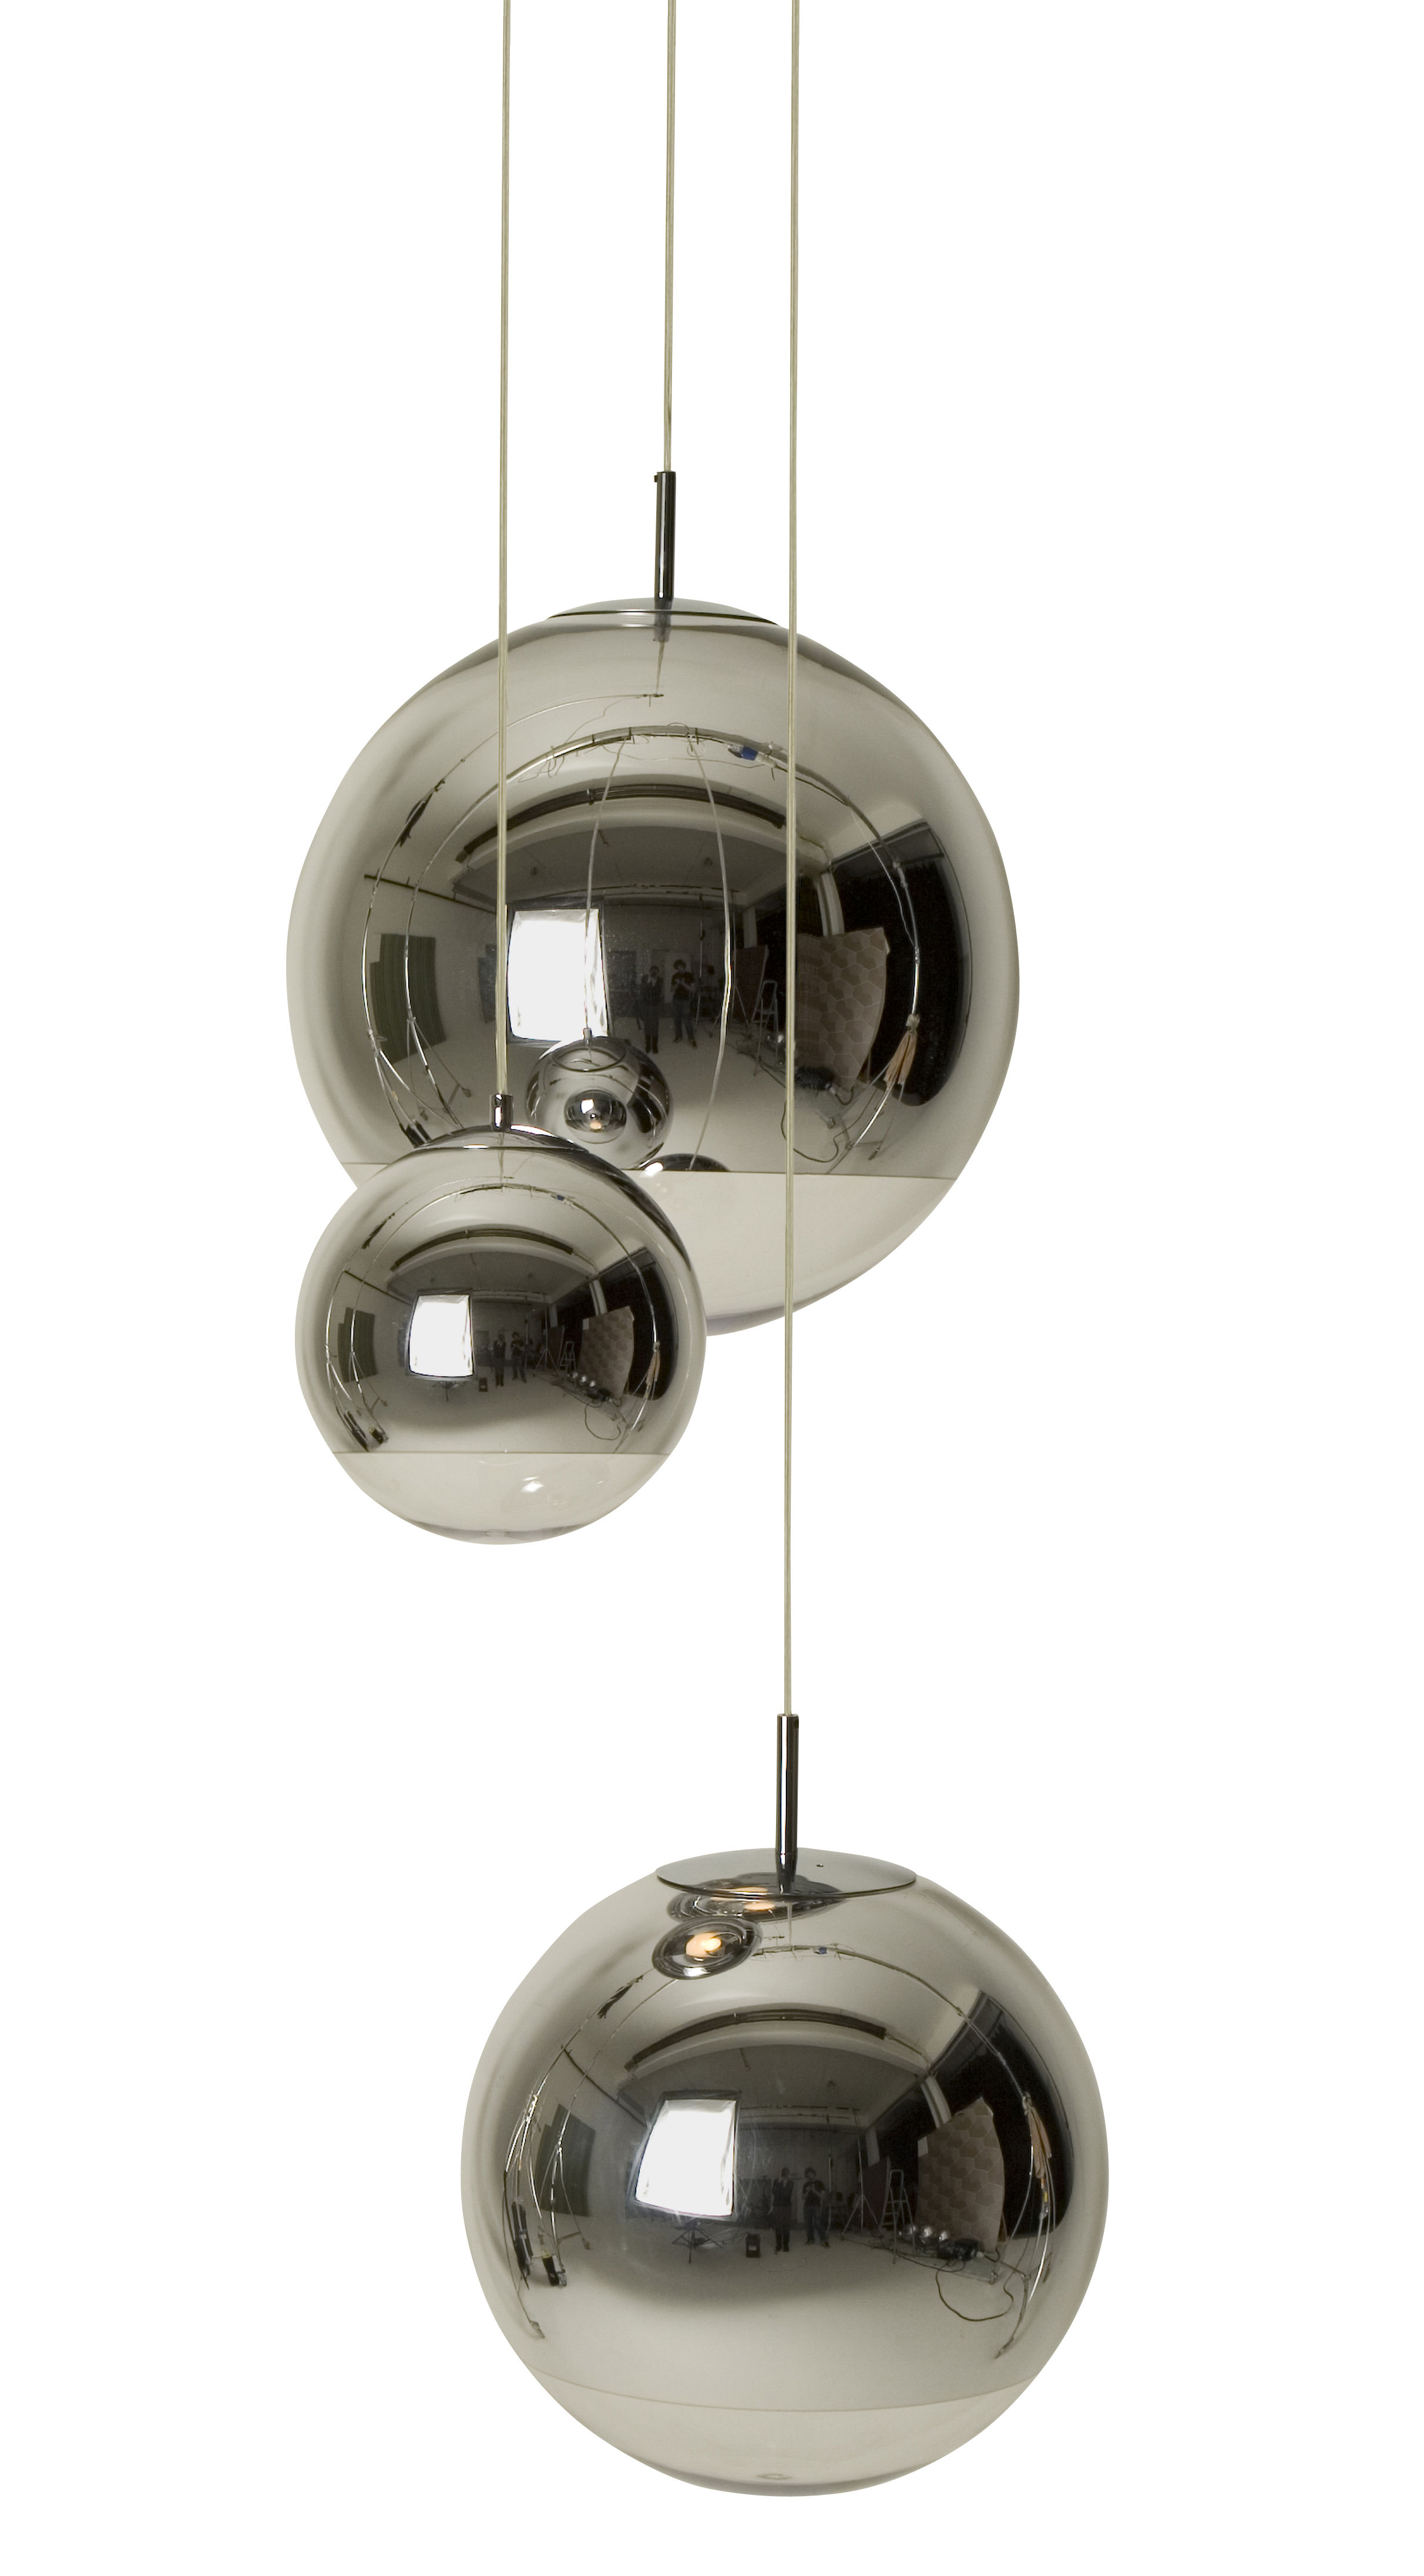 copper round pendelleuchte kupfer by tom dixon made in. Black Bedroom Furniture Sets. Home Design Ideas